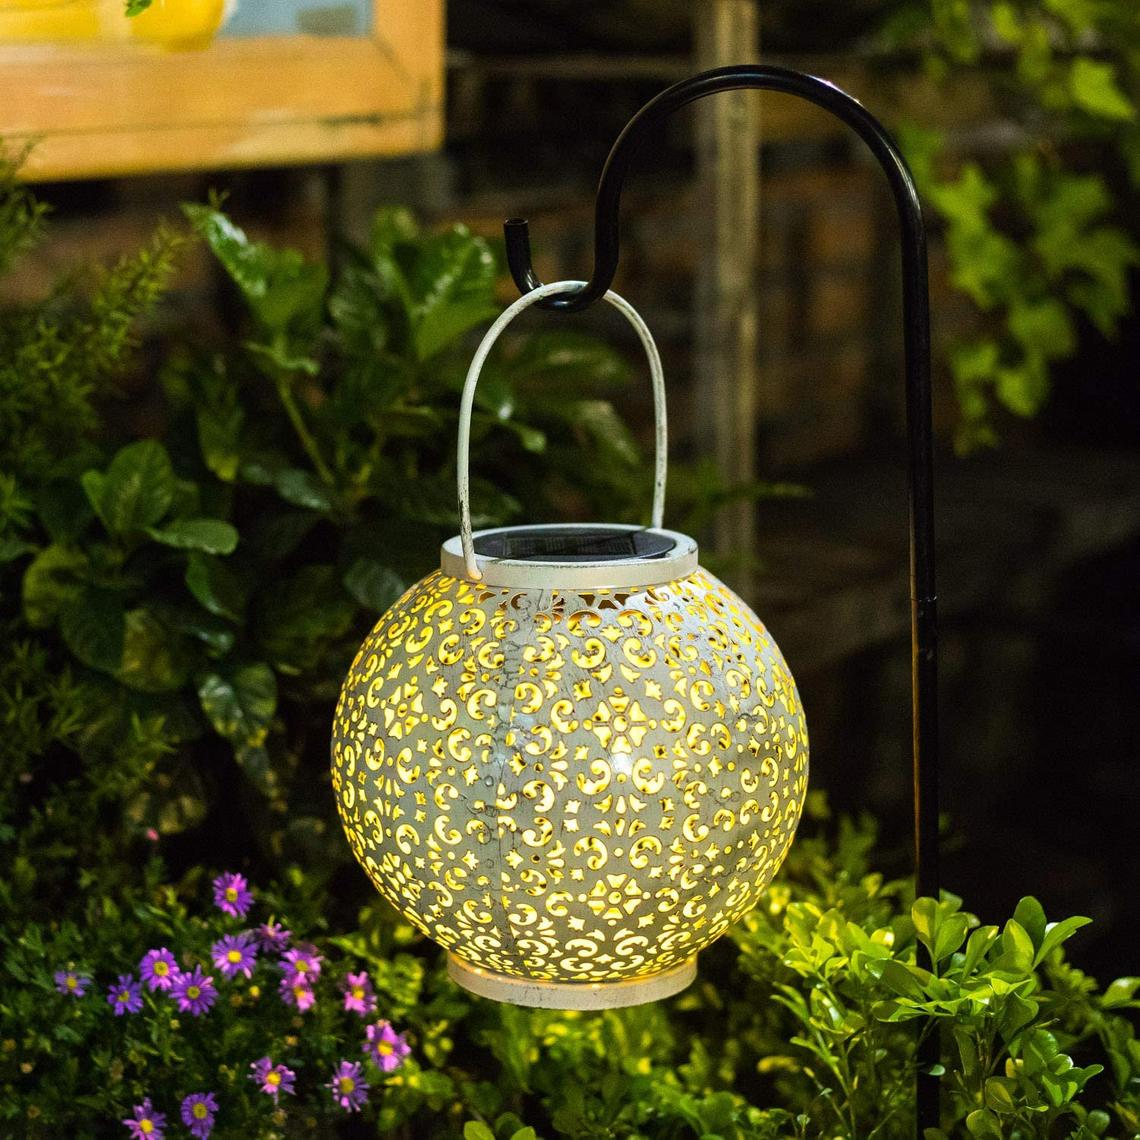 Lantern Hanging lights outdoor for Patio Garden Lawn